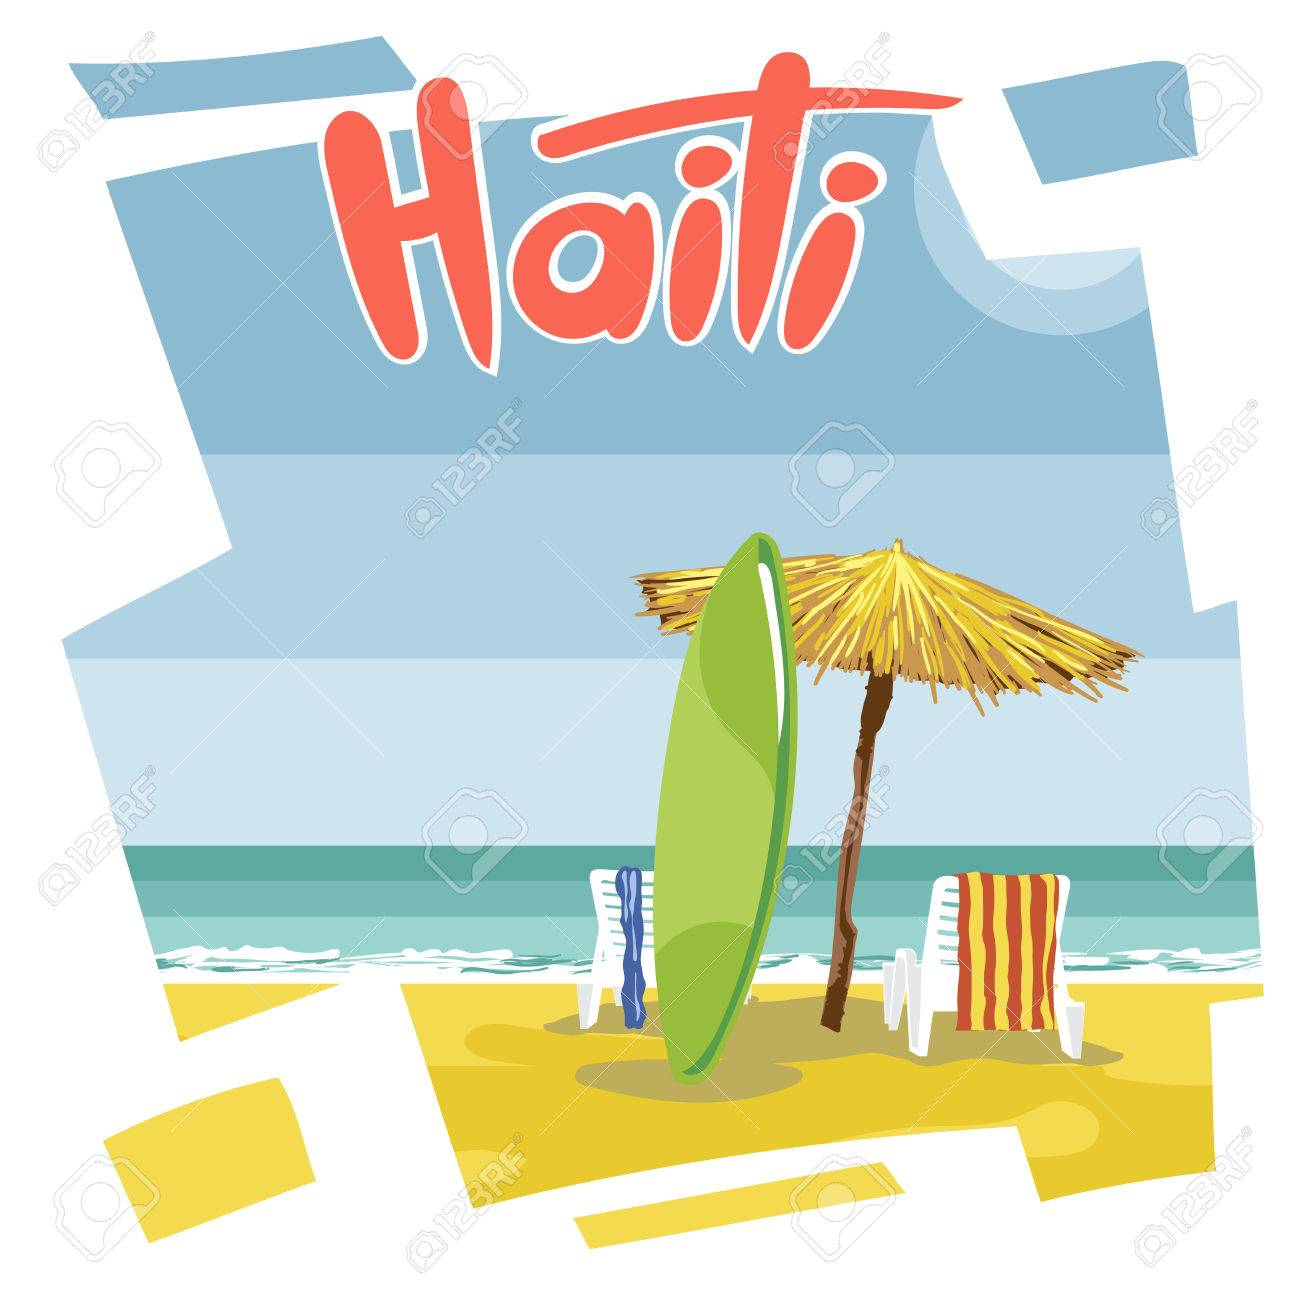 Haiti Beach Flyer With A Green Surfing Board An Umbrella From